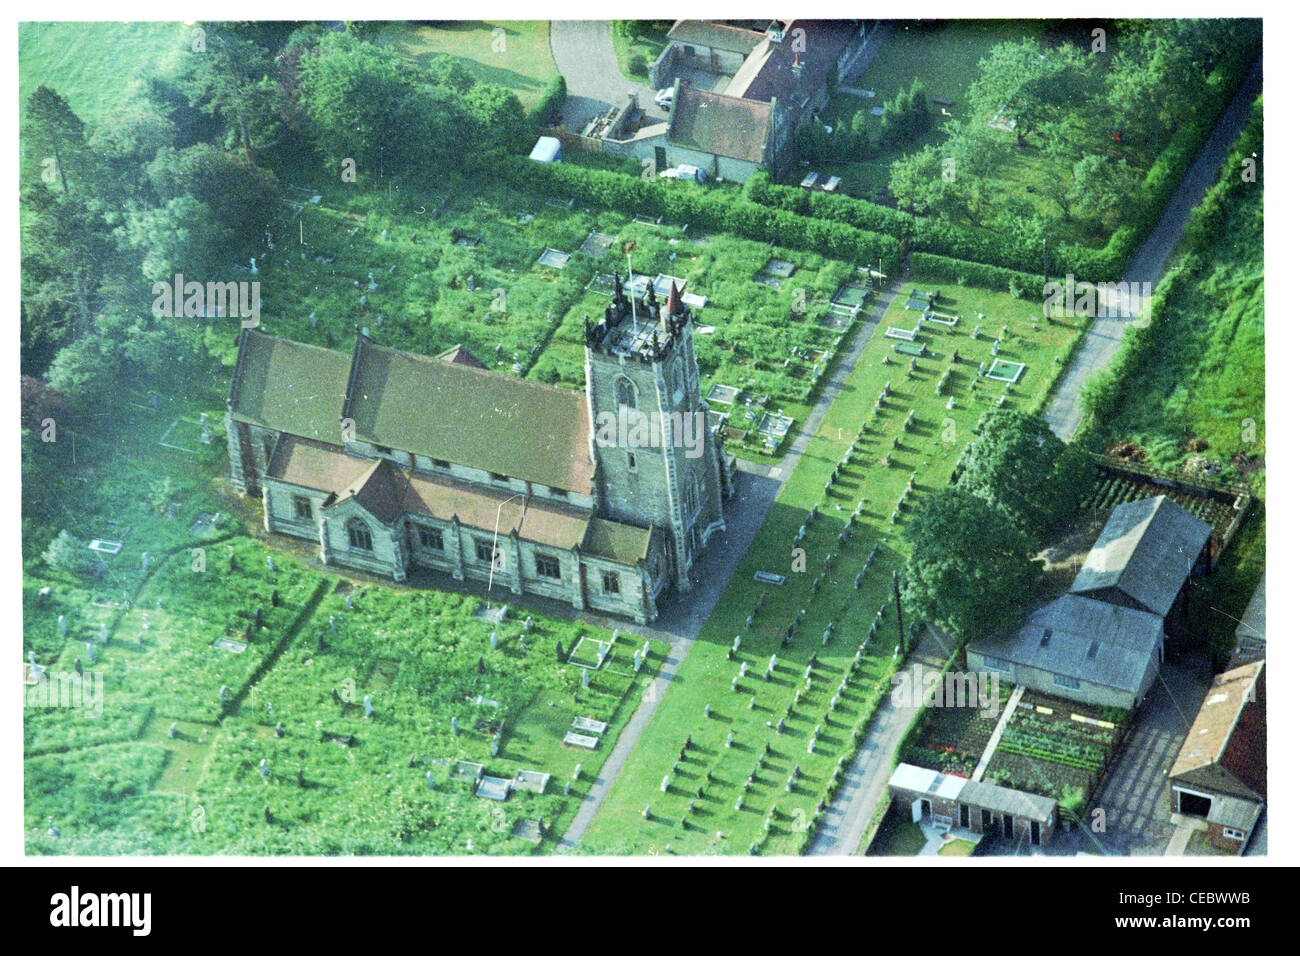 Oblique Aerial View At An Altitude Of 1500ft Part The Village Newport In